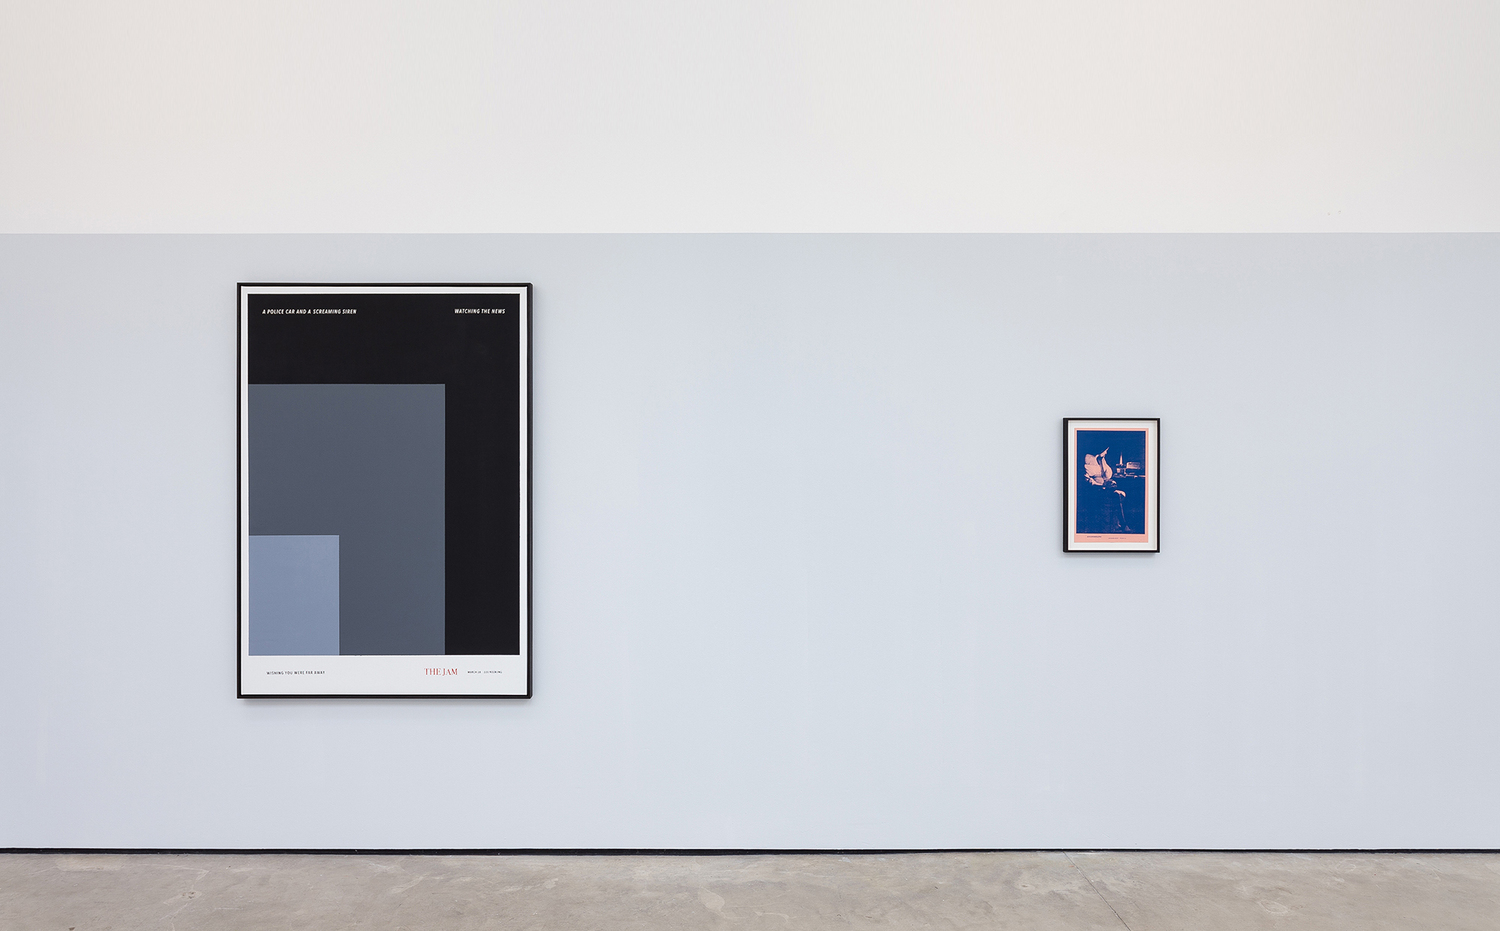 Installation view 'In Another Country', The Modern Institute, Osborne Street, Glasgow, 2020